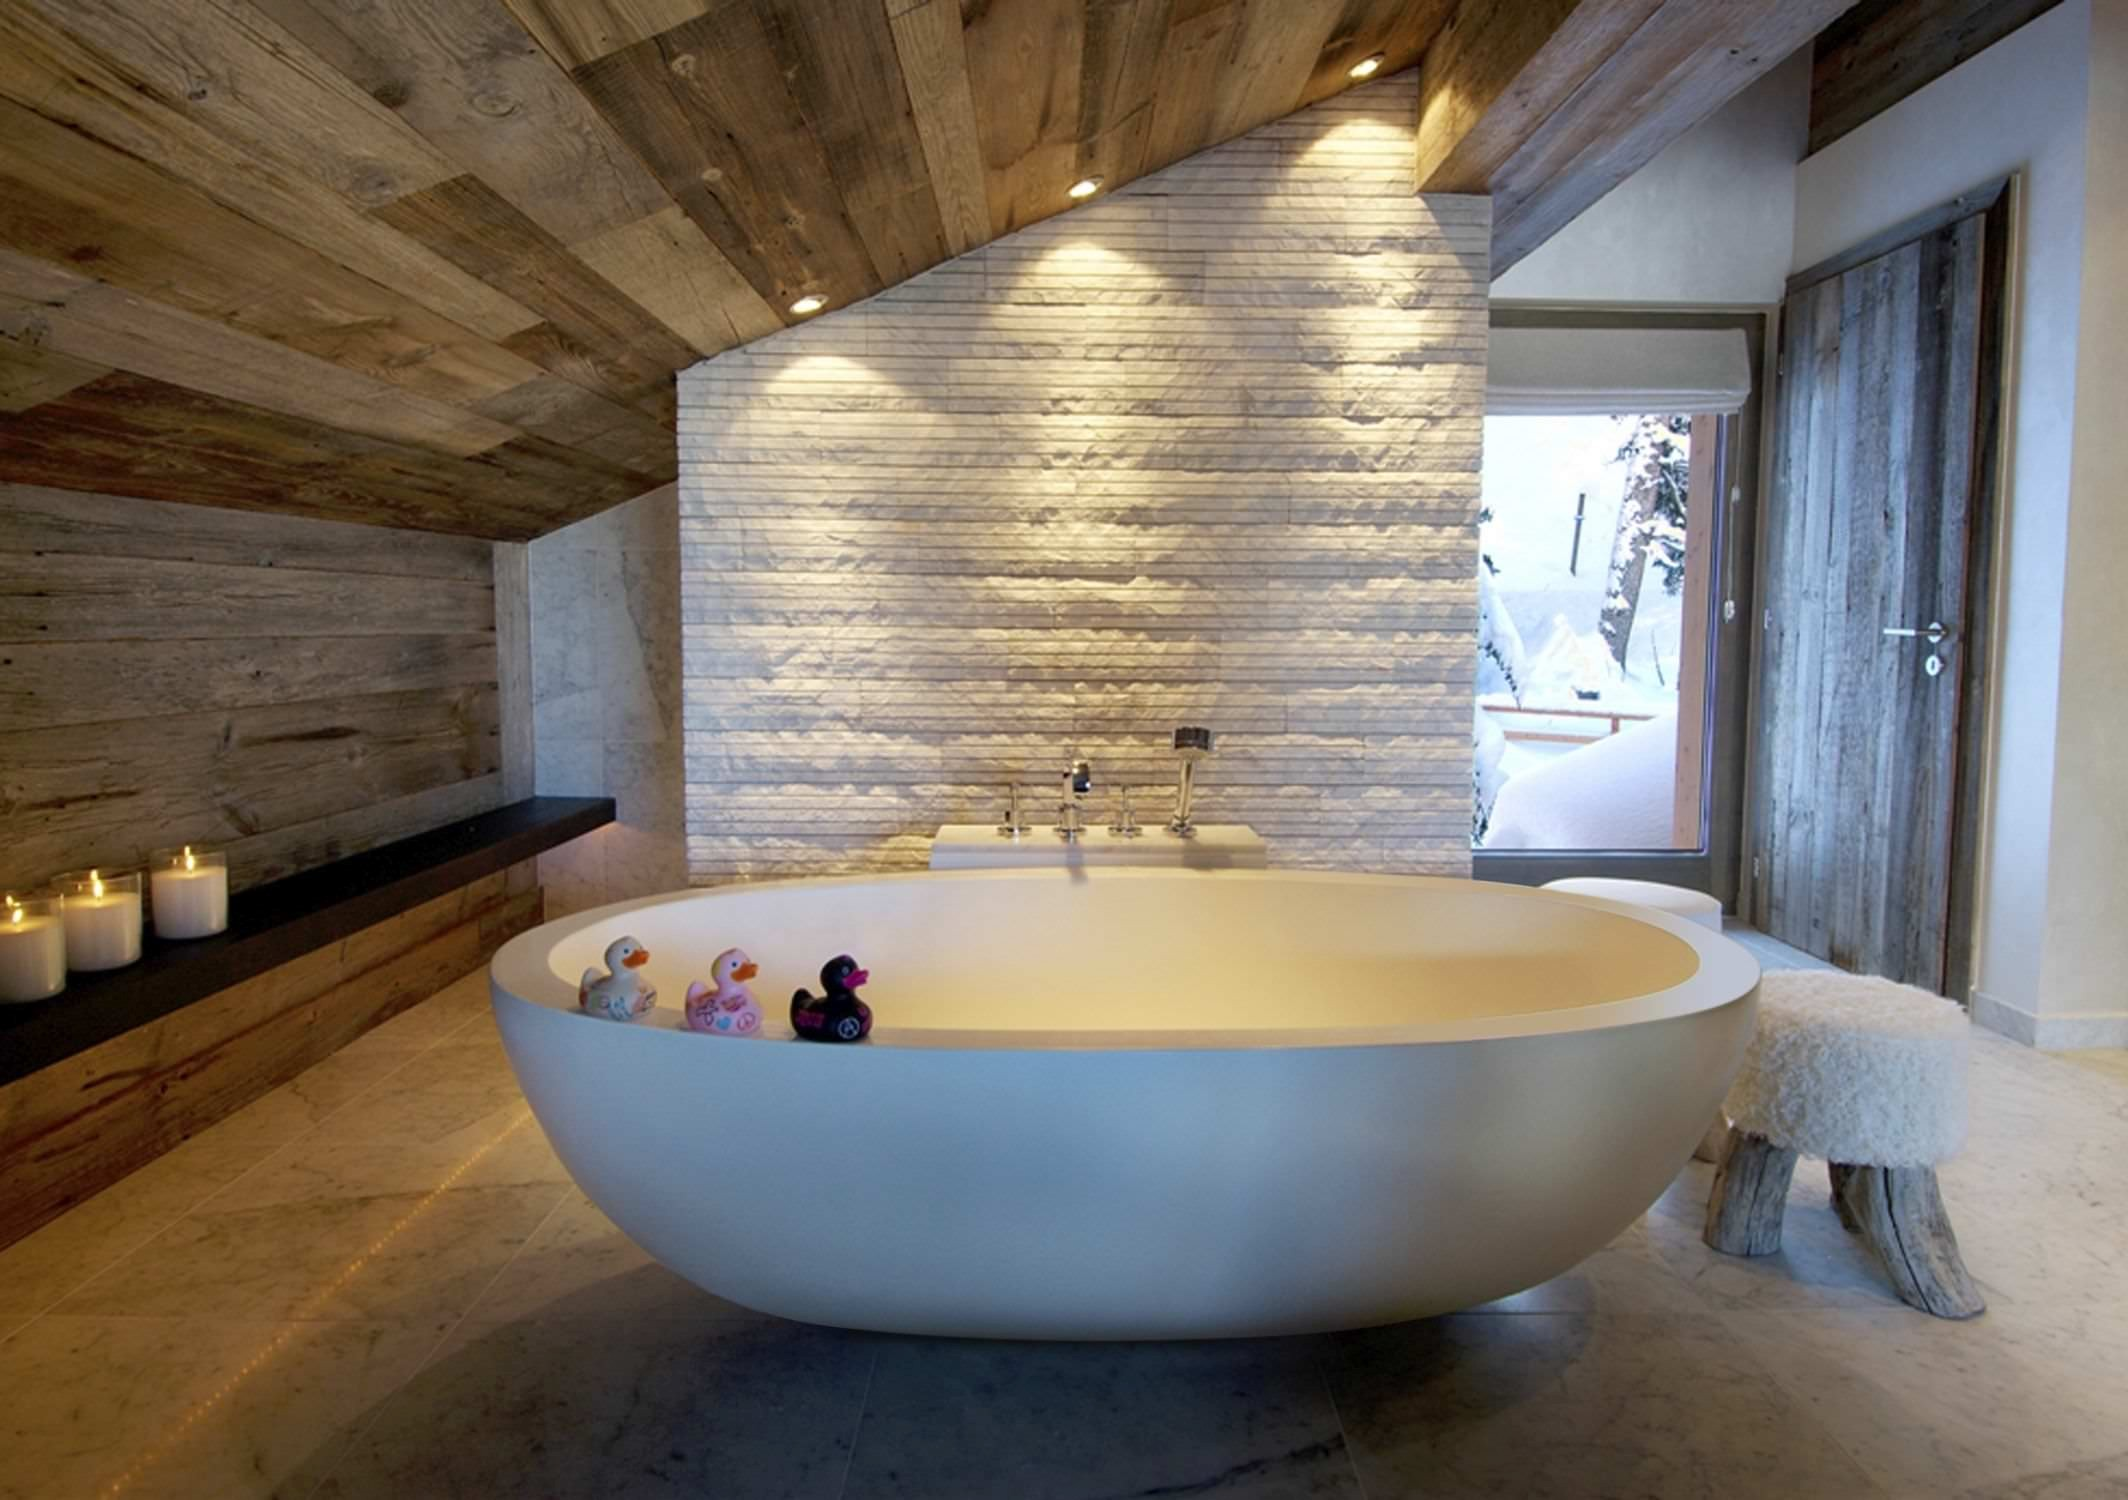 Modern Rustic Bathroom Beautiful Awesome Modern Rustic Bathrooms Design Ideas with White Brick Decoration